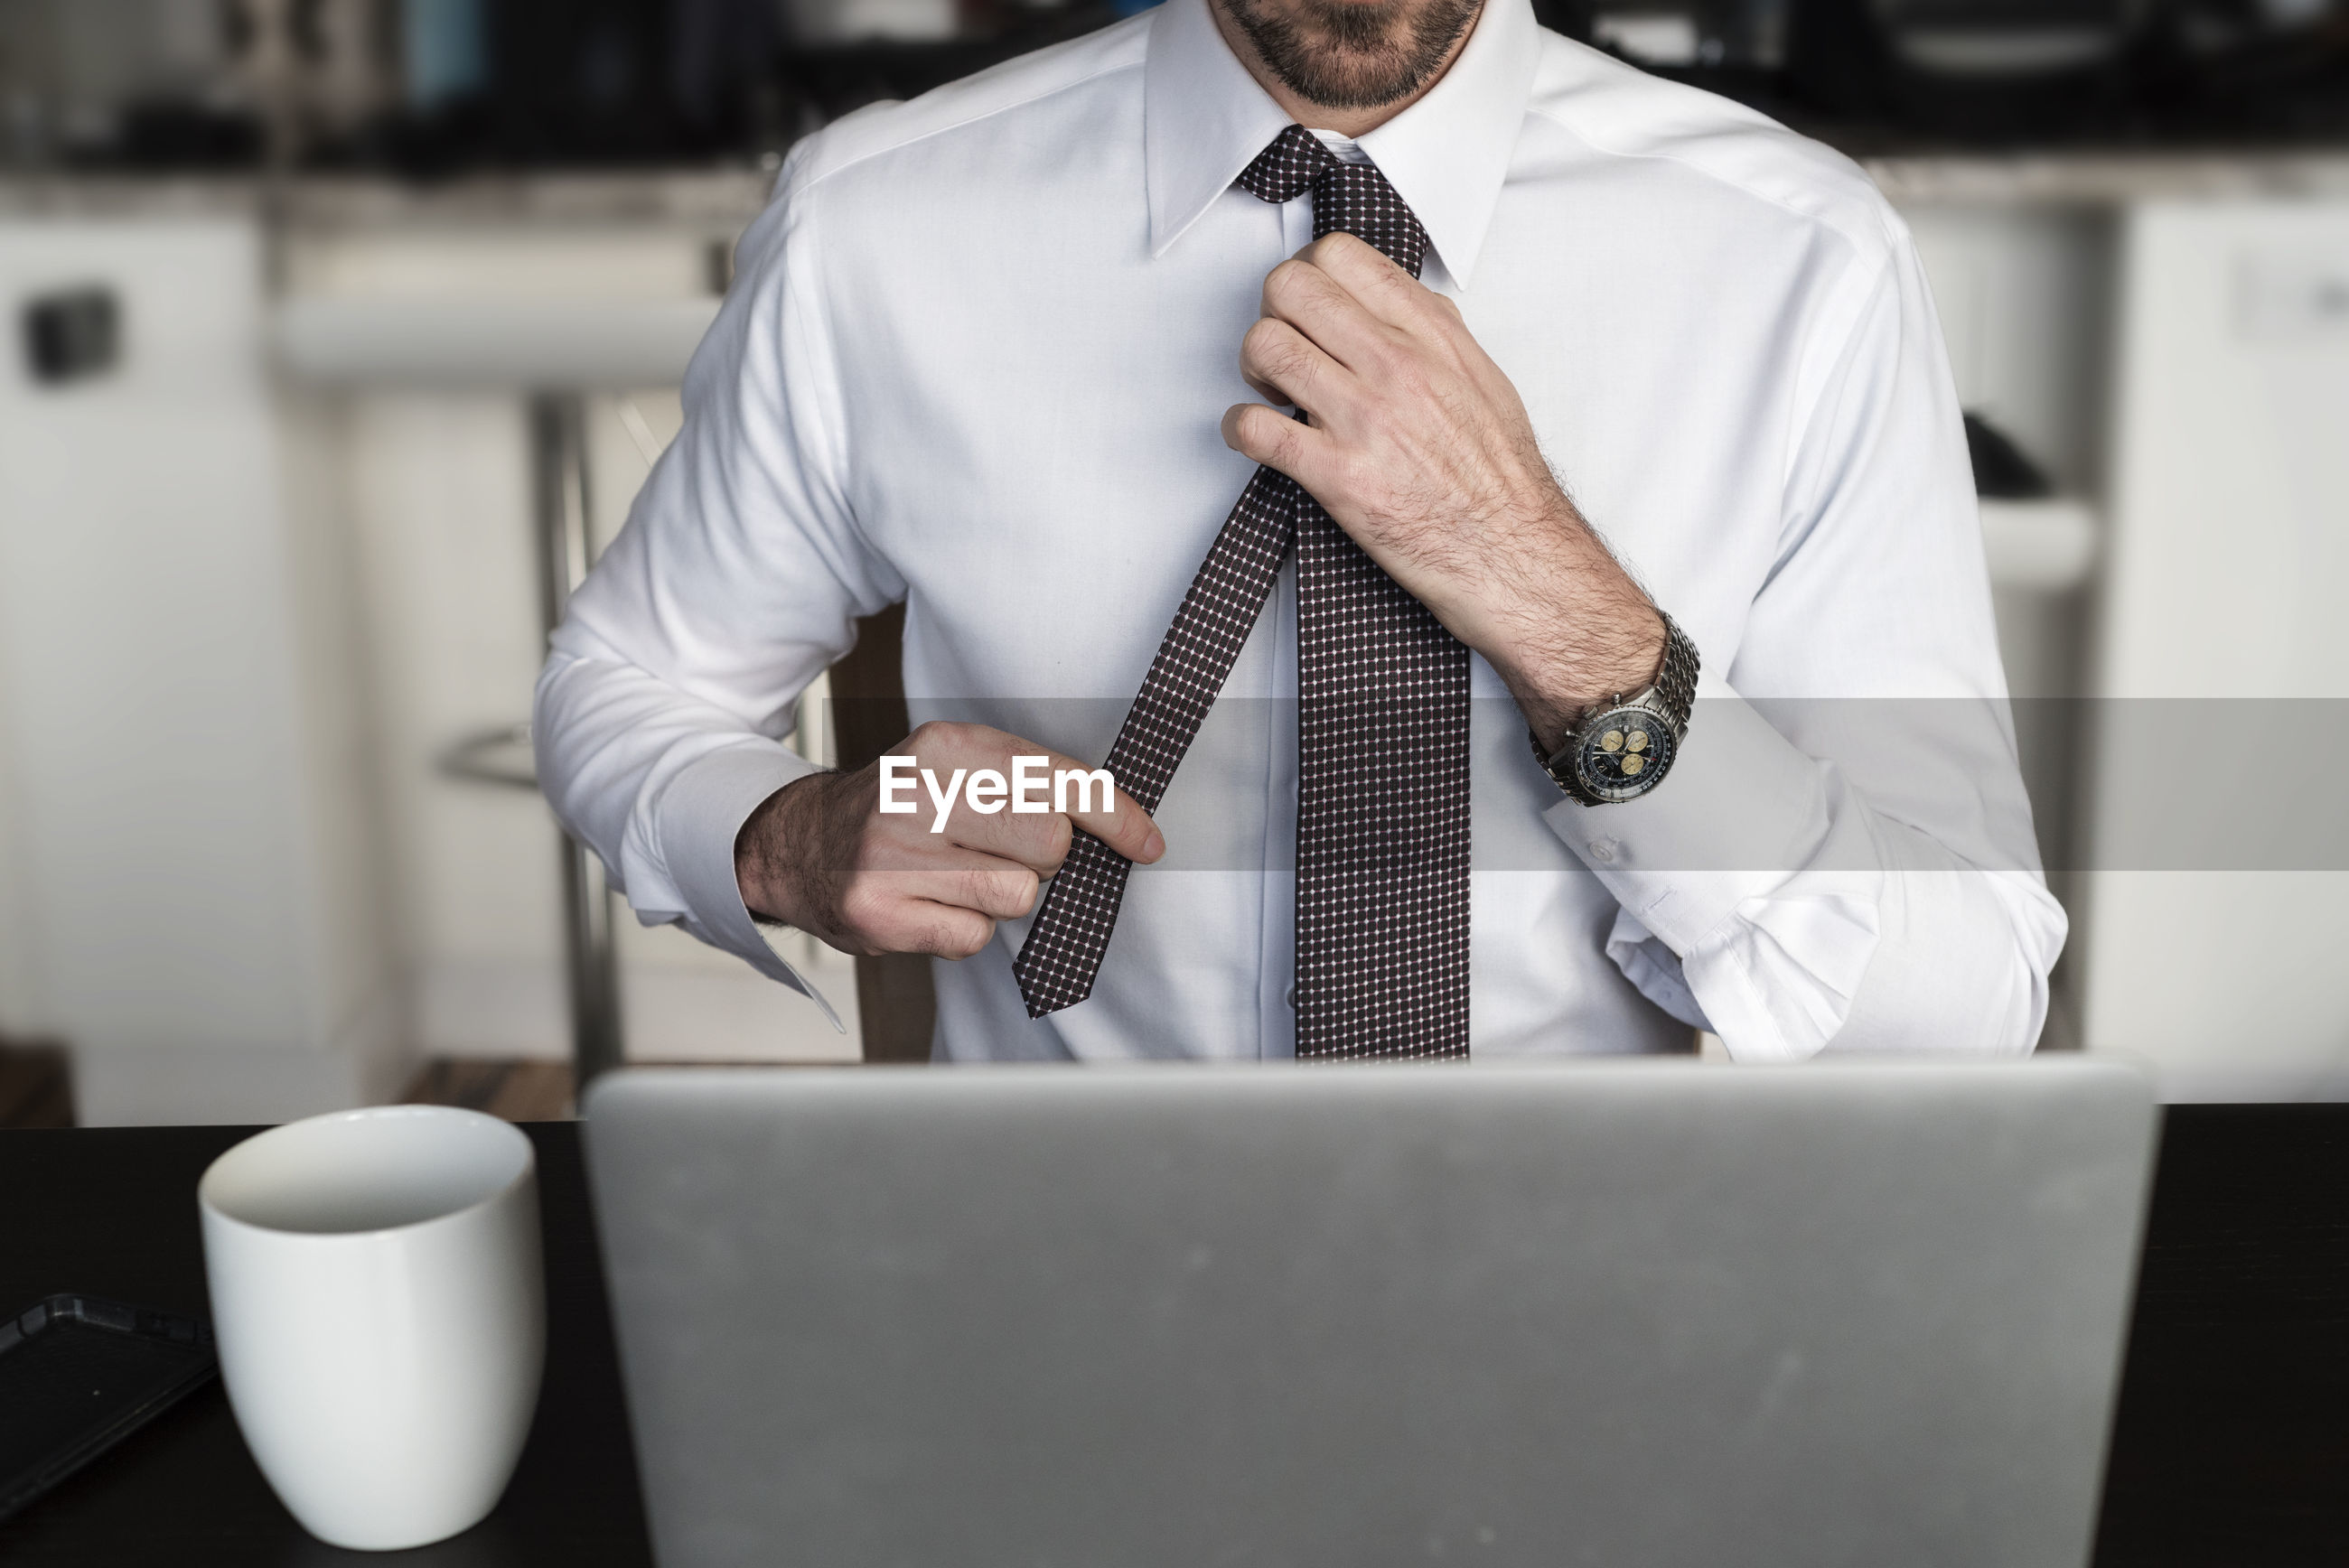 Midsection of man working in office